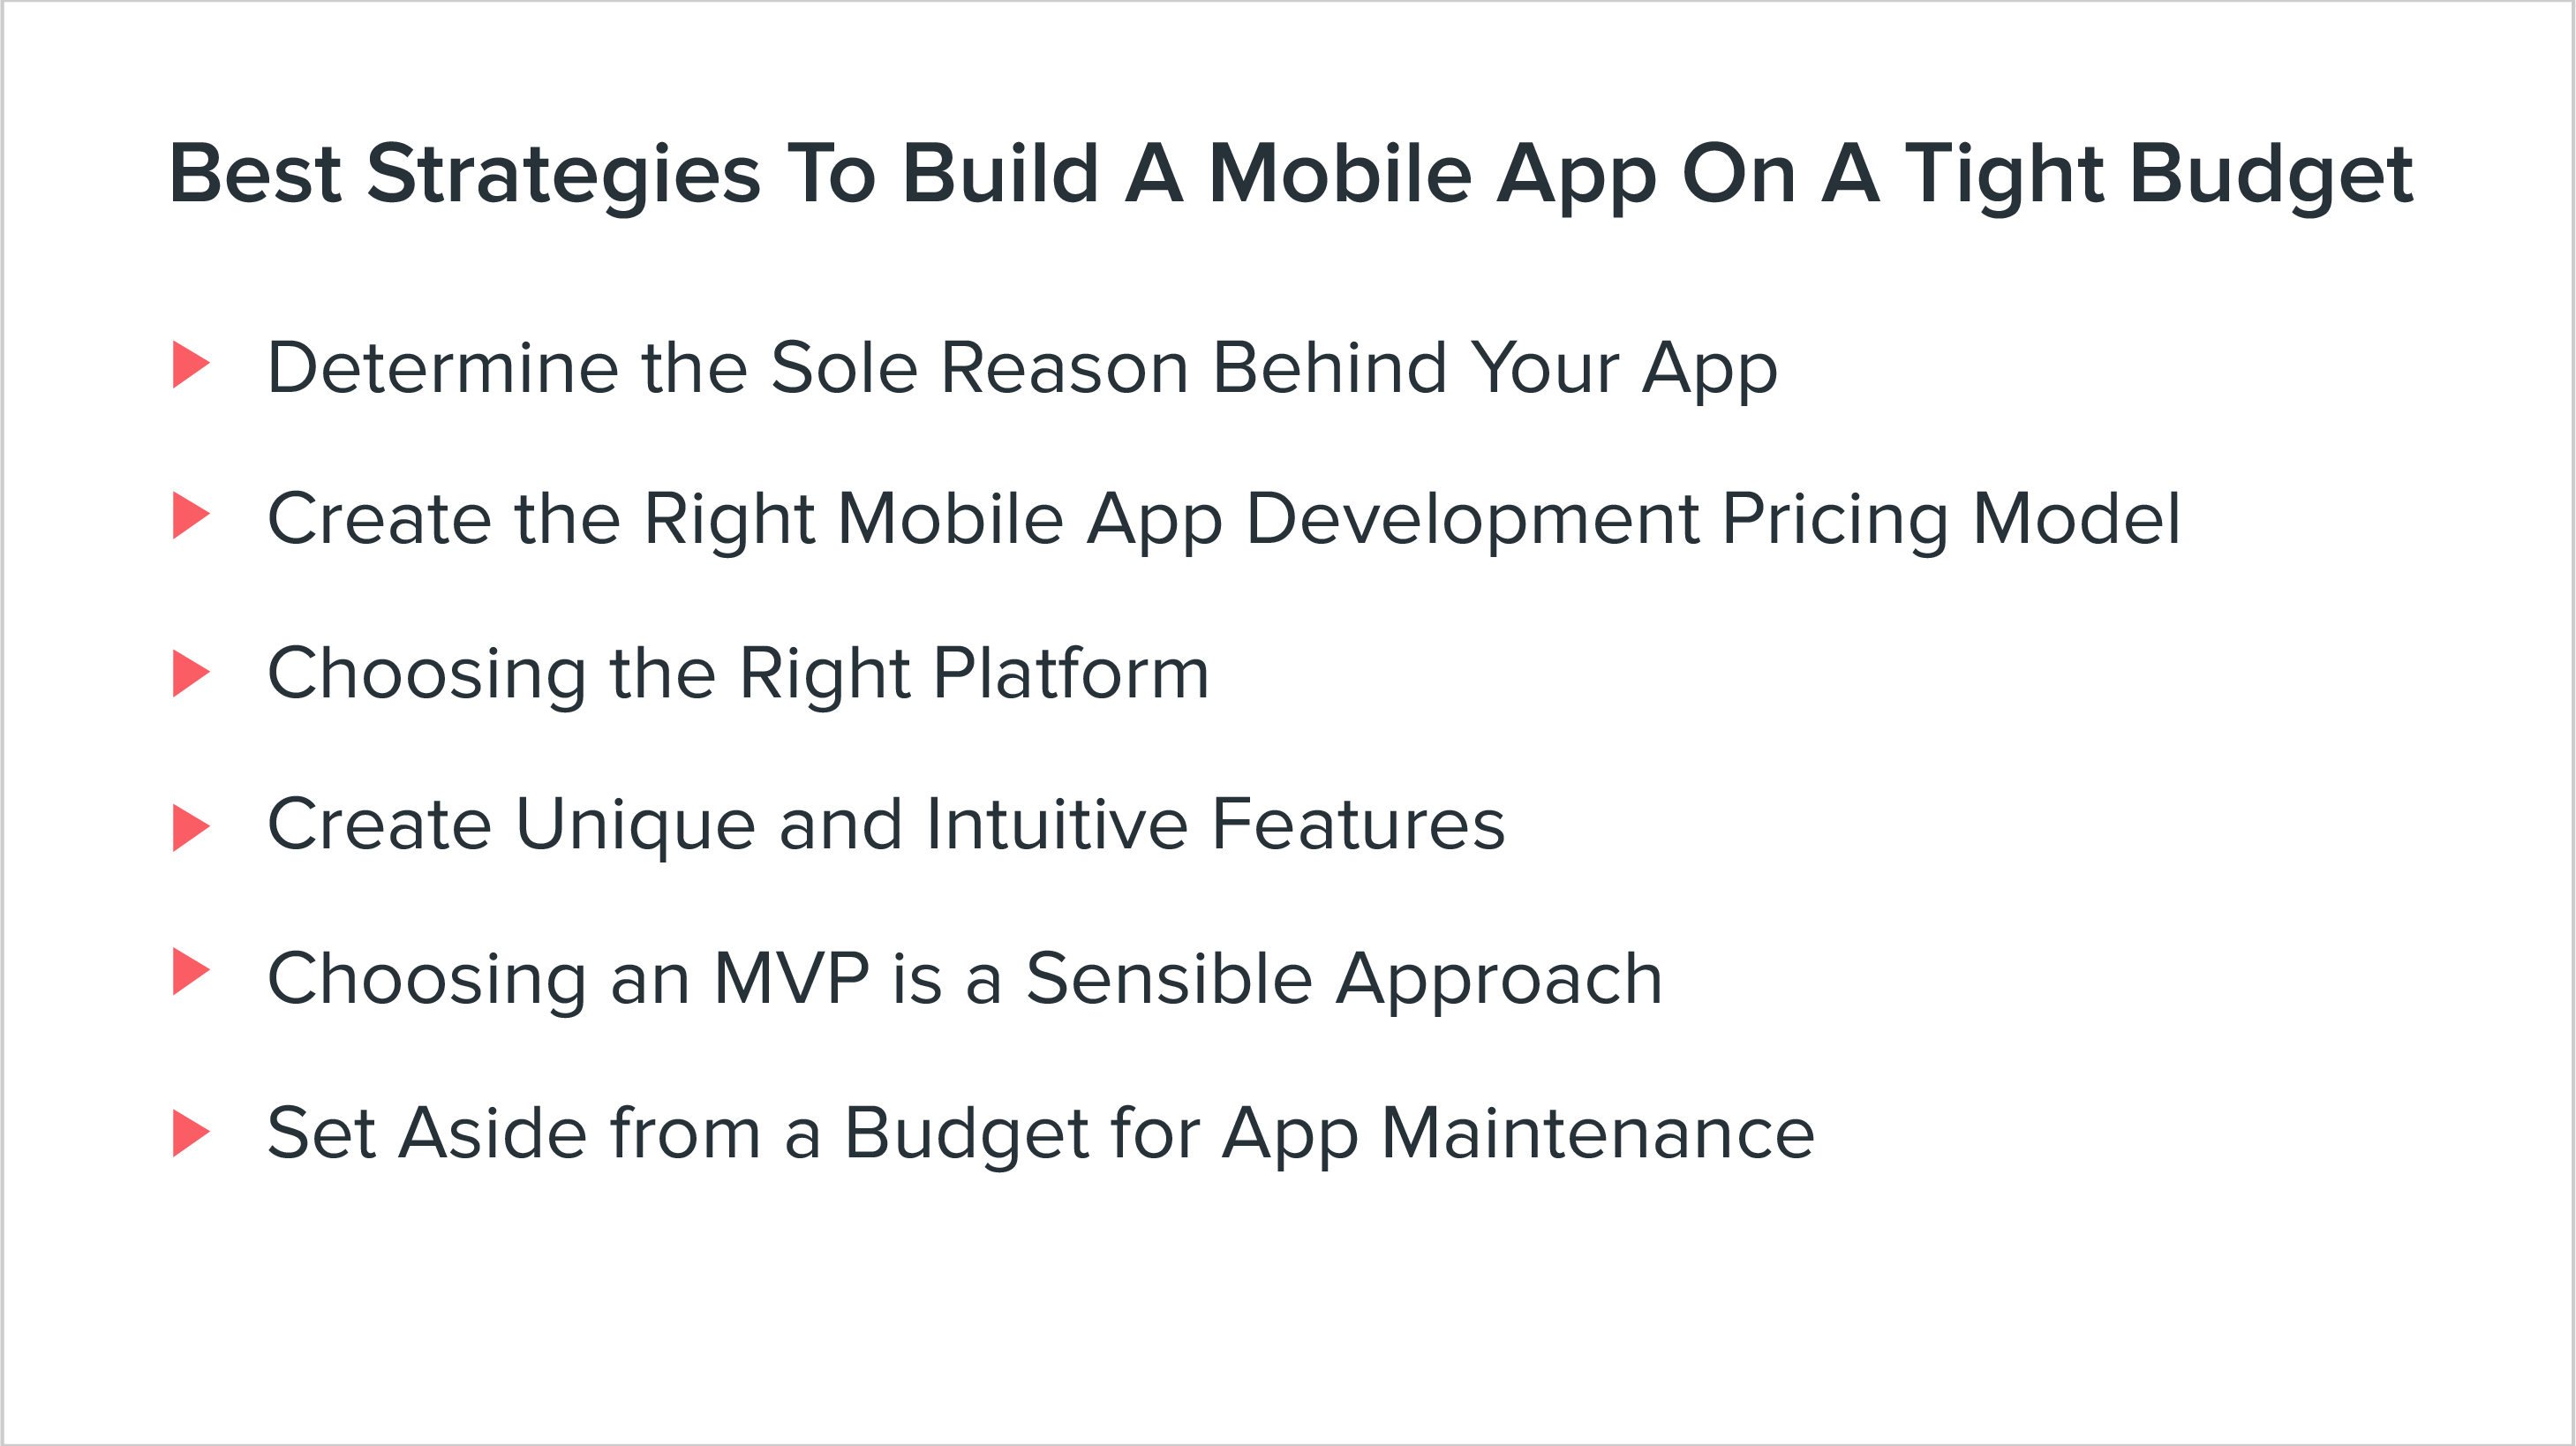 Best Strategies to Built a mobile app on a tight budget